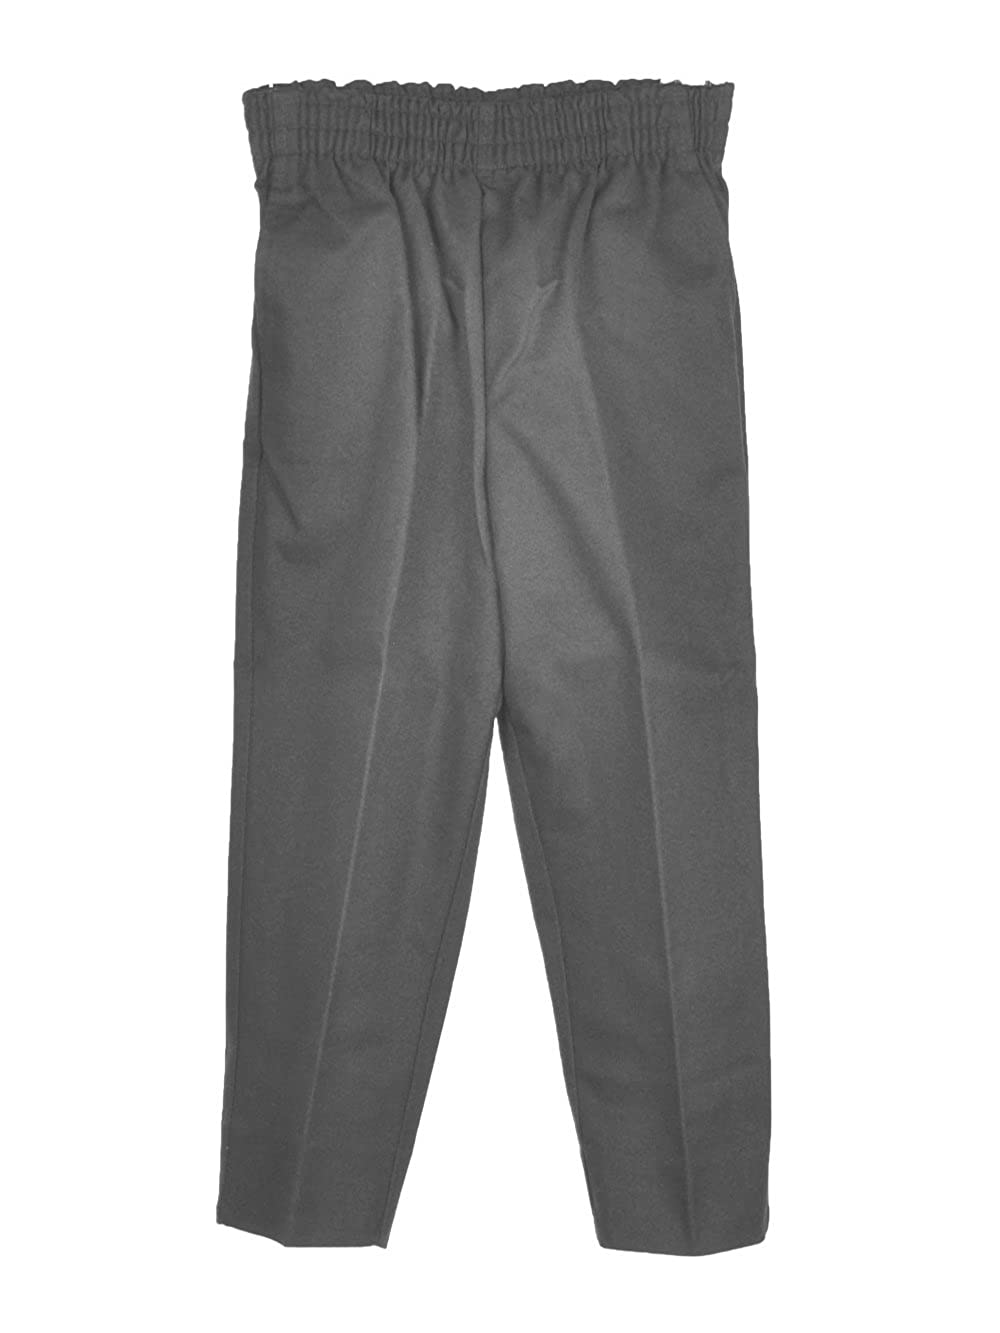 Rifle Little Boys' Fully Elastic Pull-On Flat Front Pants 4